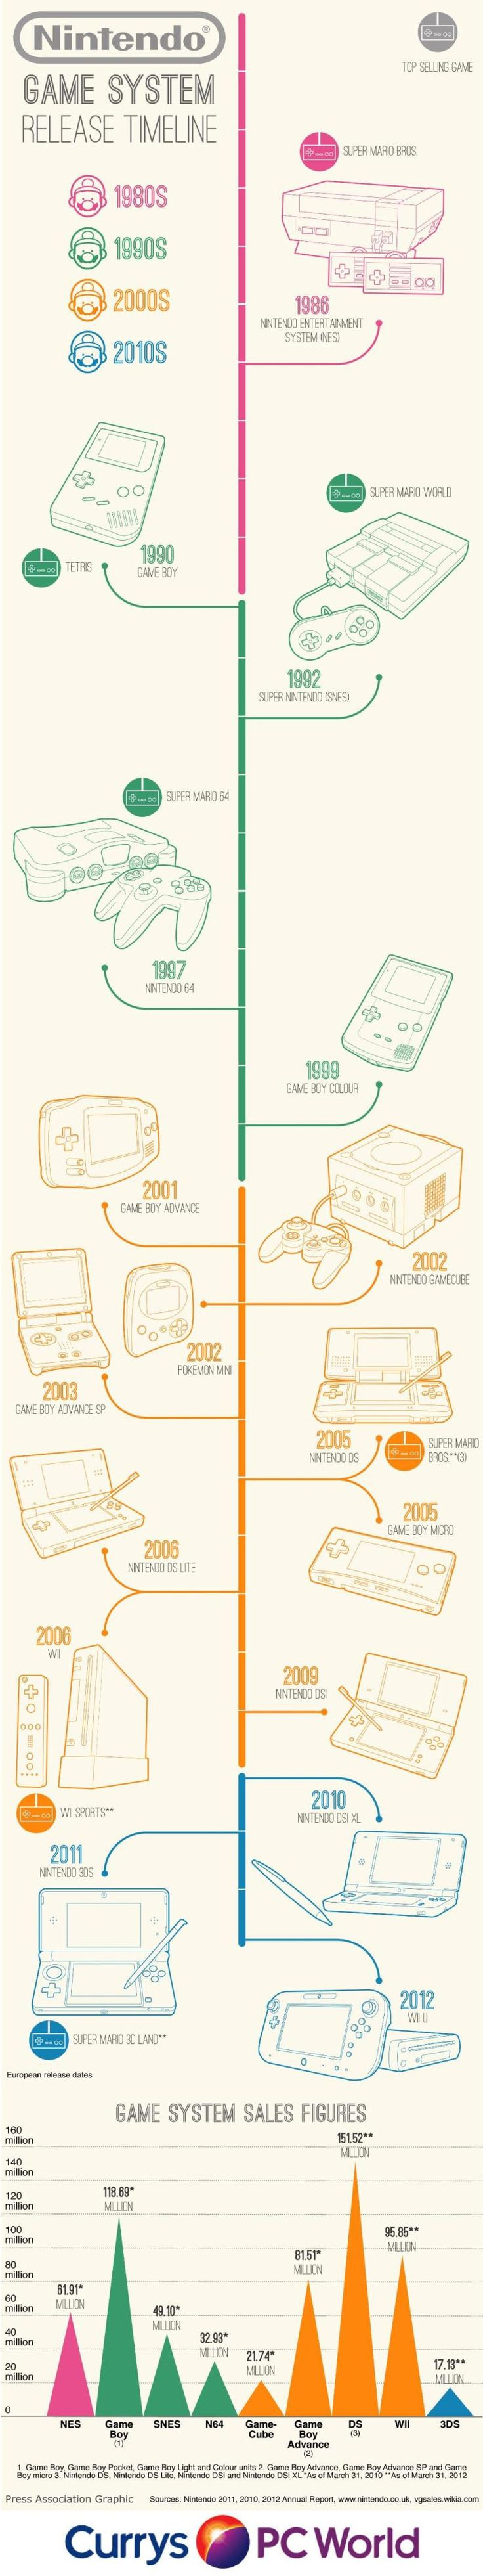 Timeline | Tipsographic | More timeline tips at http://www.tipsographic.com/  Like, Re-Pin. Thank's!!!  Repined by http://www.casualgameportal.com/category/nintendo/